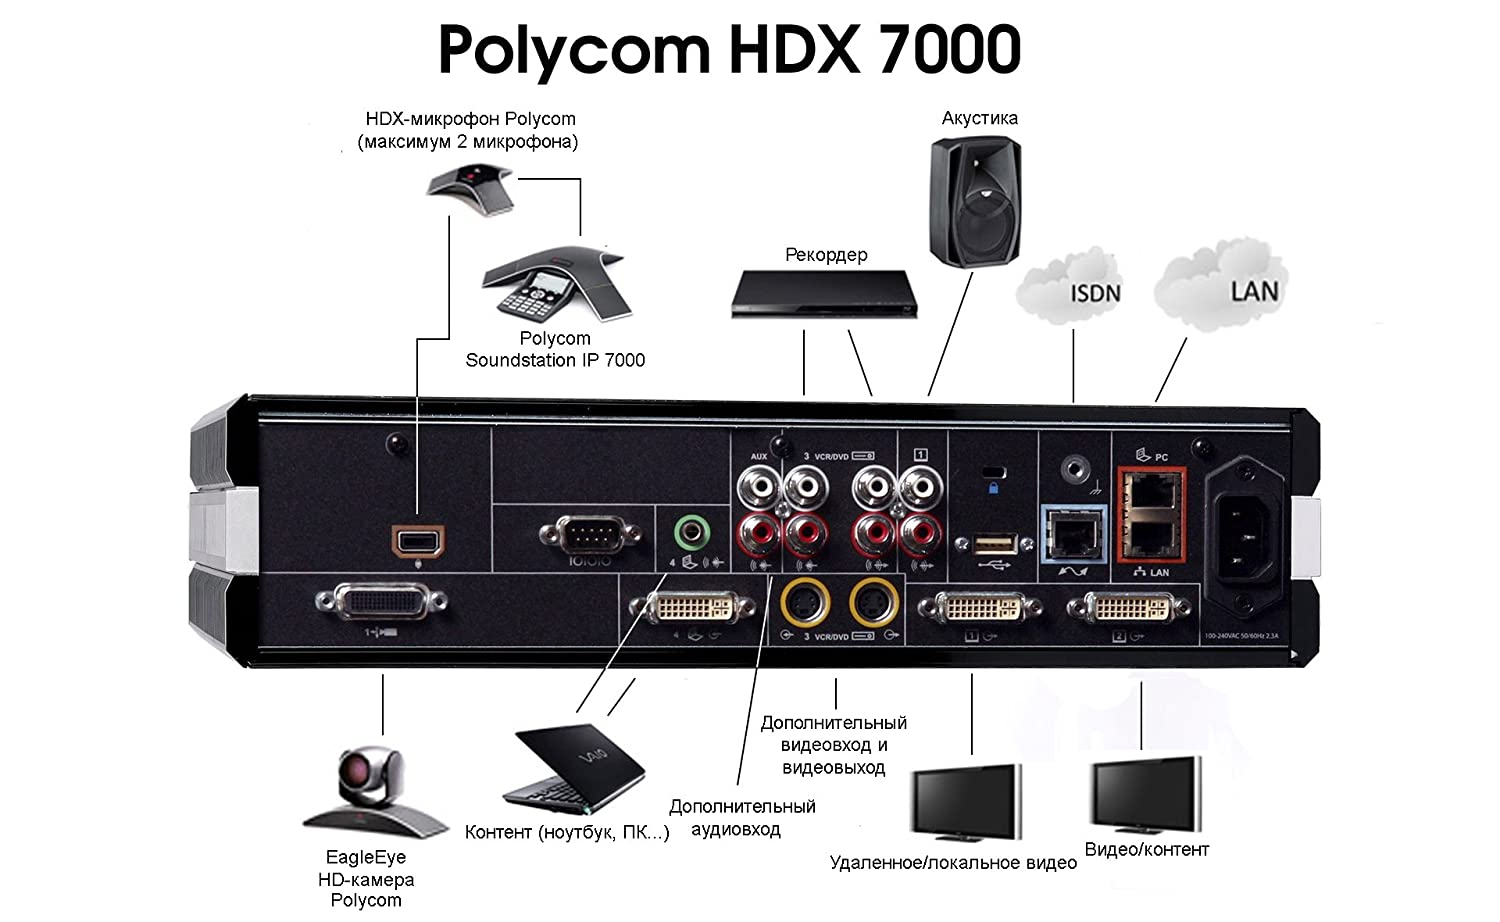 polycom hdx 7000 manual best setting instruction guide u2022 rh merchanthelps us polycom hdx 7000 admin guide polycom hdx 7000 manual download